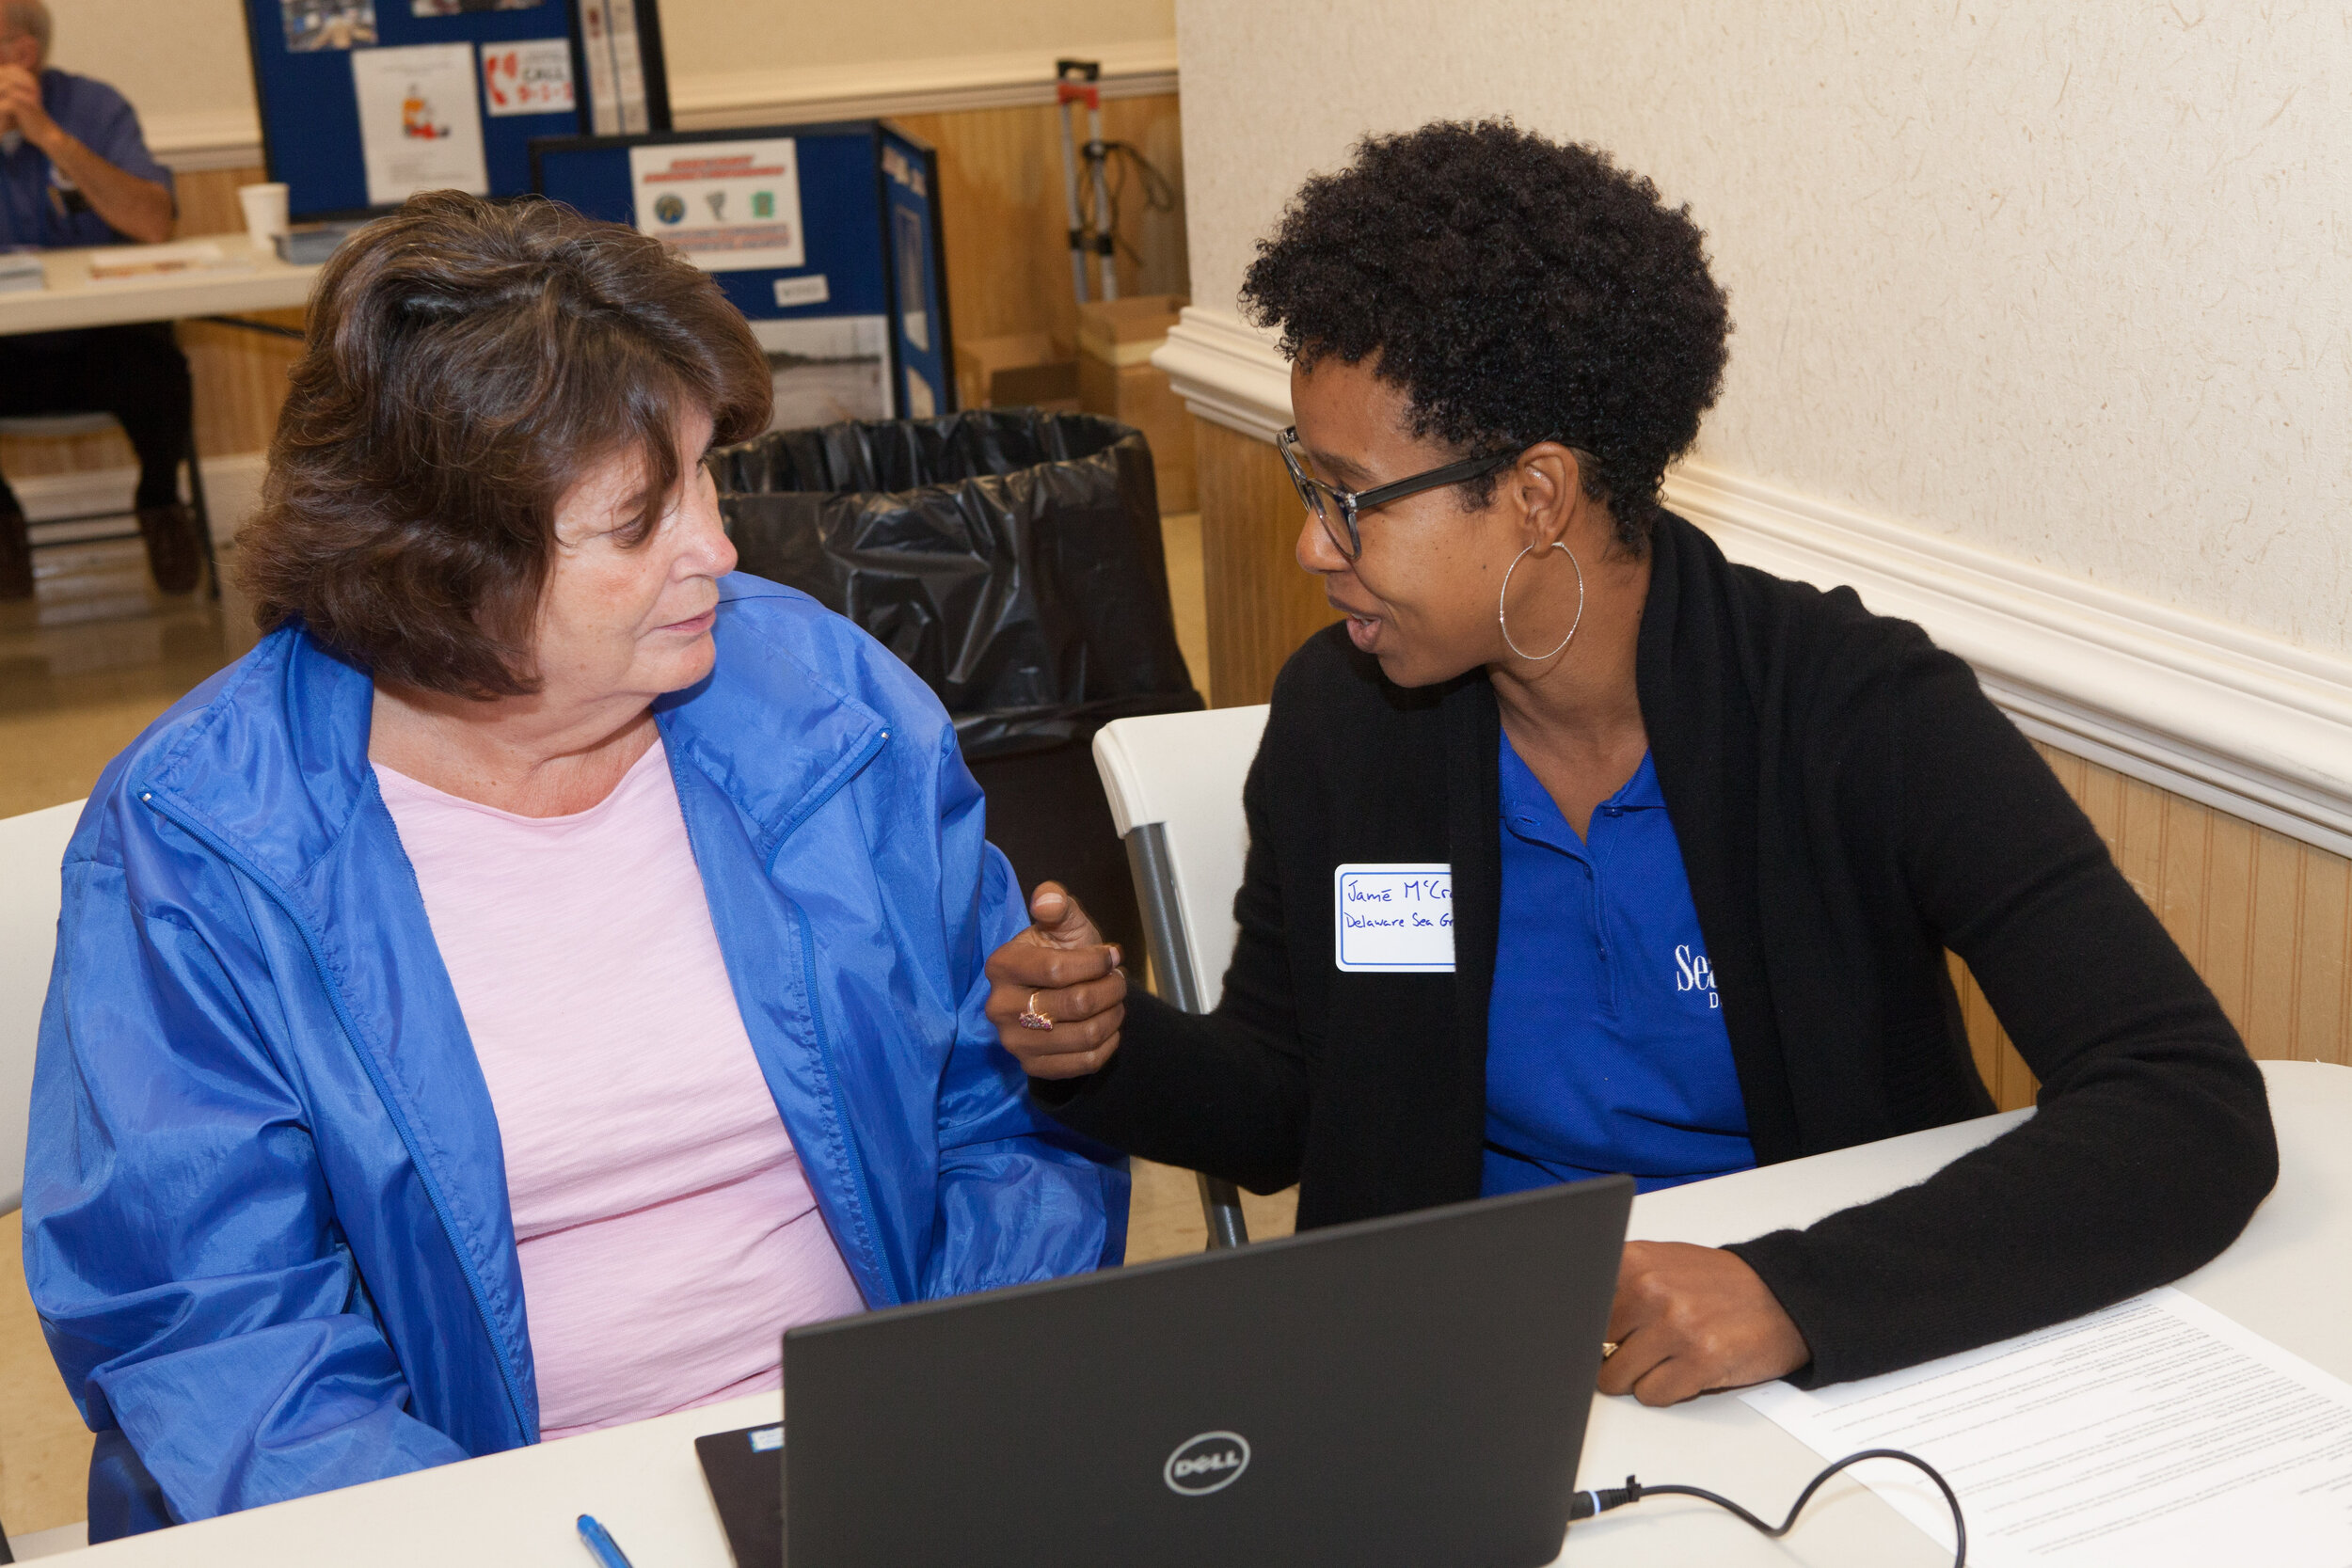 Dr. Jame McCray of Delaware Sea Grant speaks to a resident during the workshop